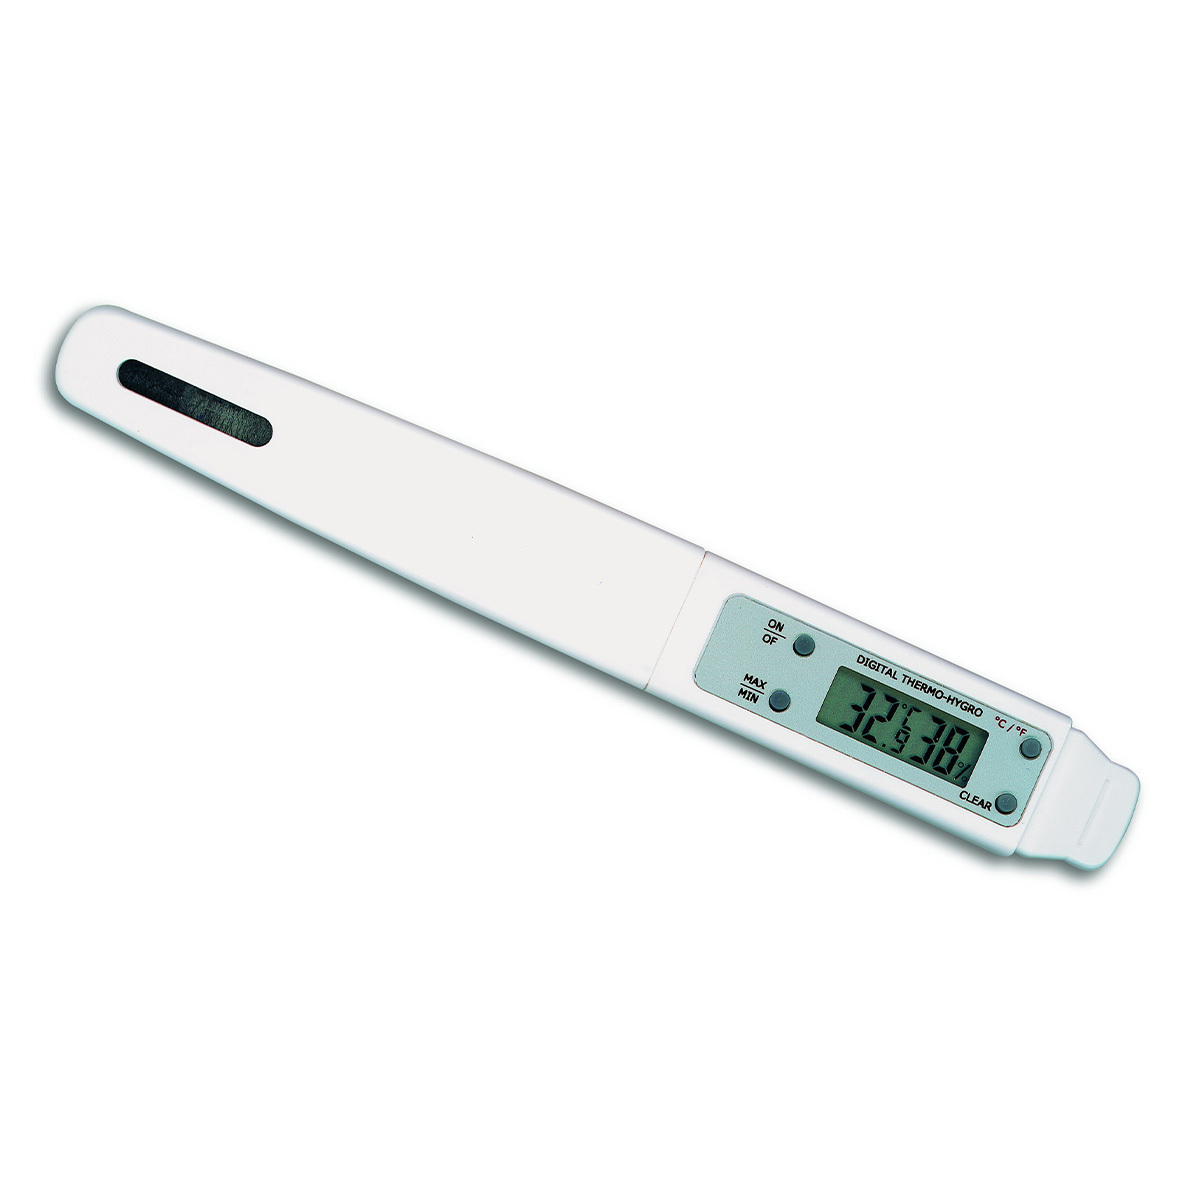 30-5007-digitales-pocket-thermo-hygrometer-1200x1200px.jpg